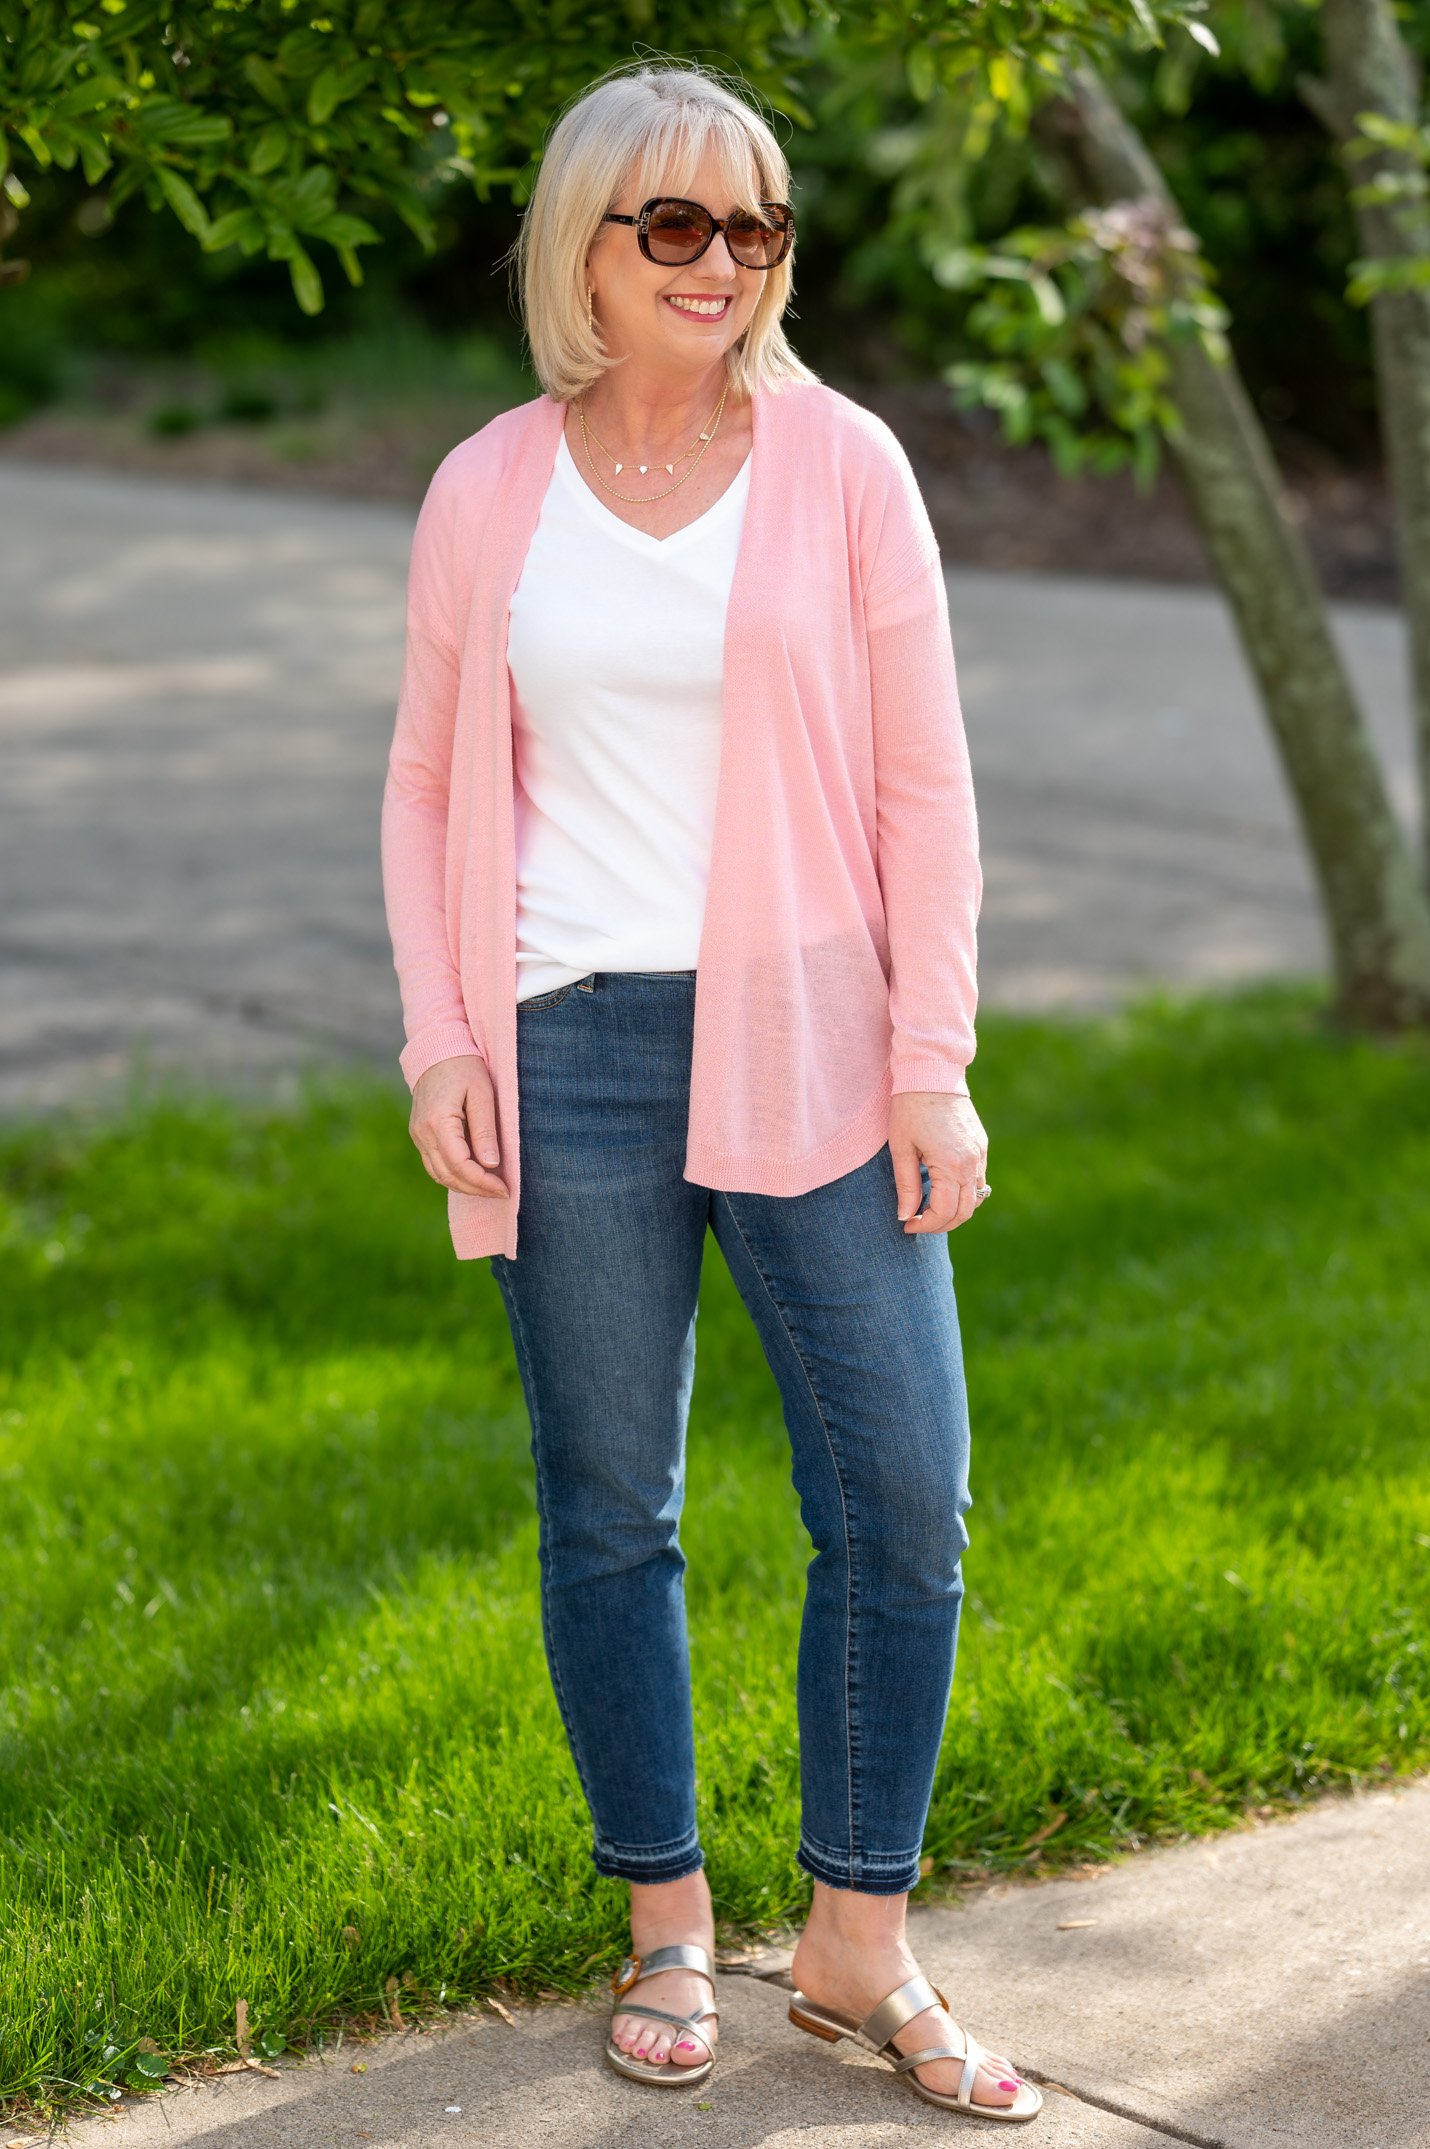 White T-Shirt with Ankle Jeans and Cardigan